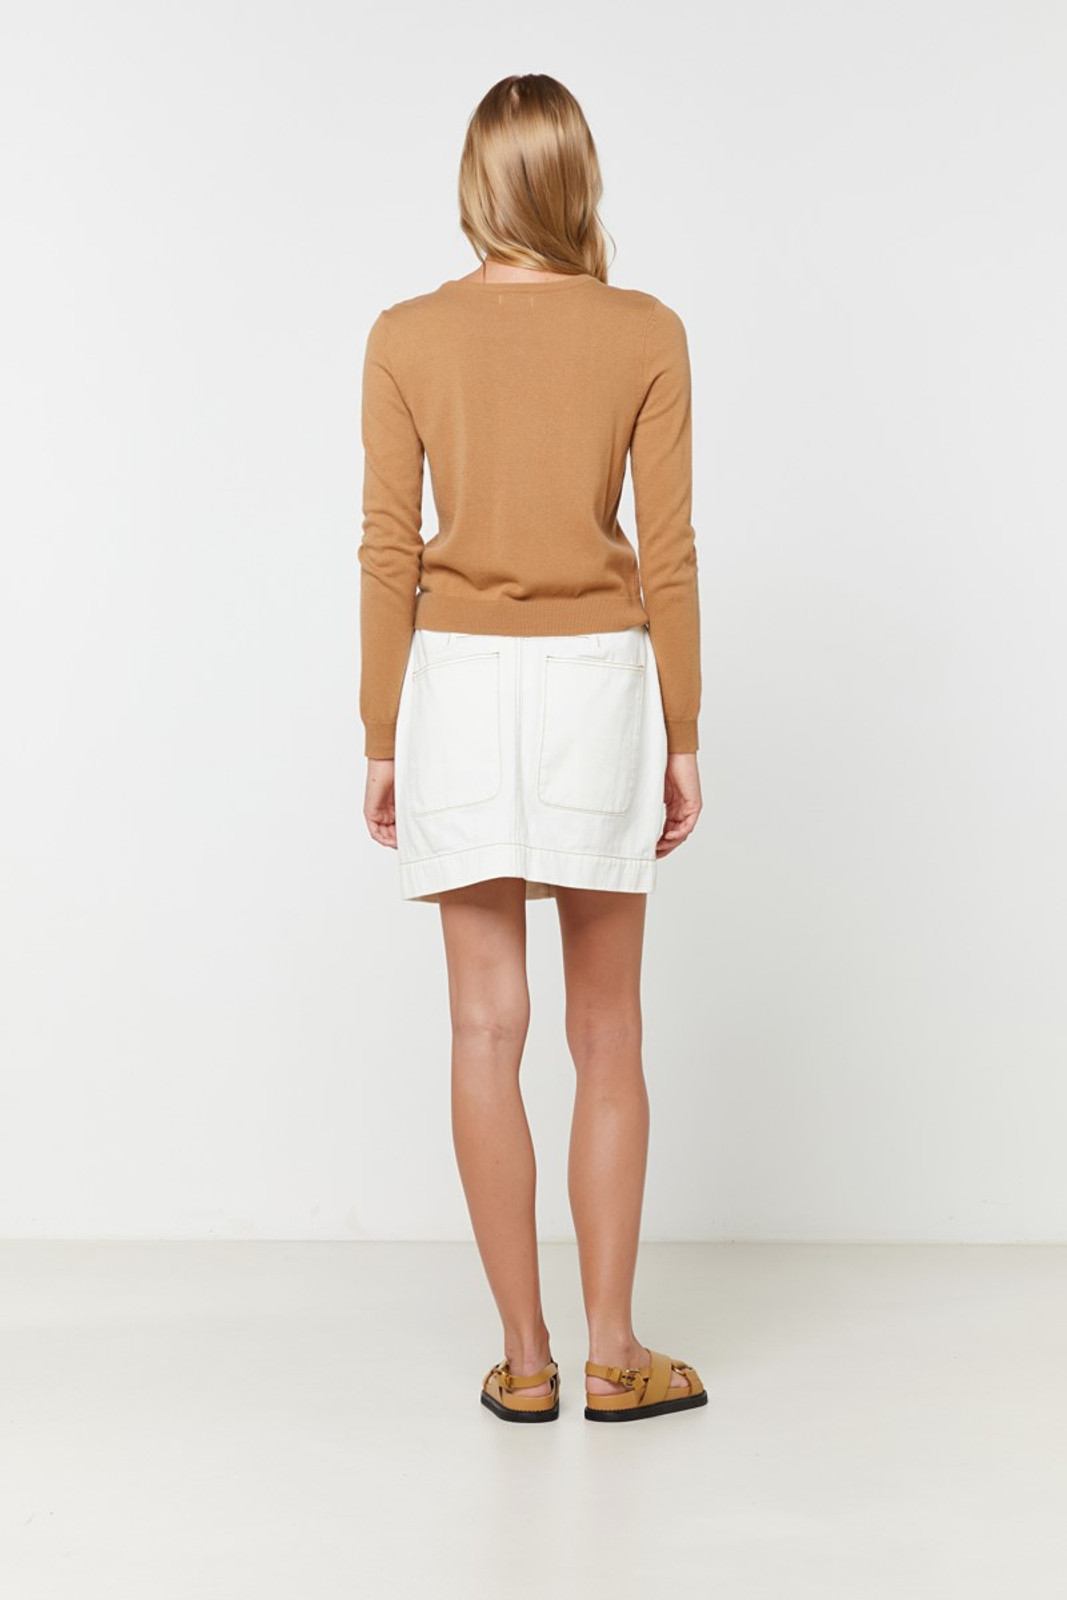 Elka Collective Gale Knit Neutrals  6